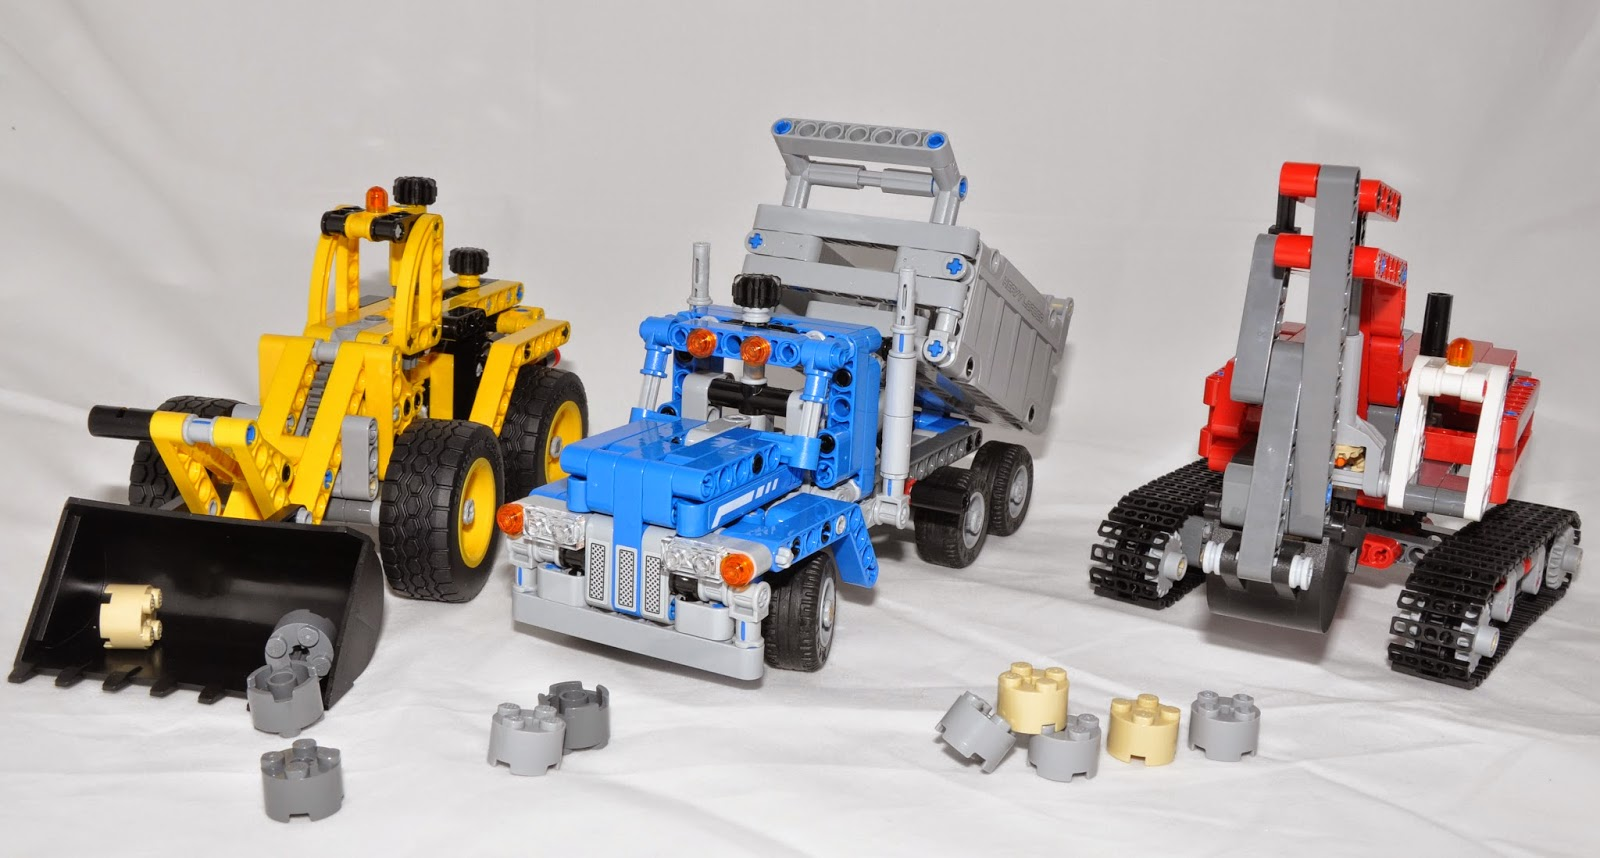 Oz brick nation lego technic 42023 construction crew review - Jeux de construction lego technic ...